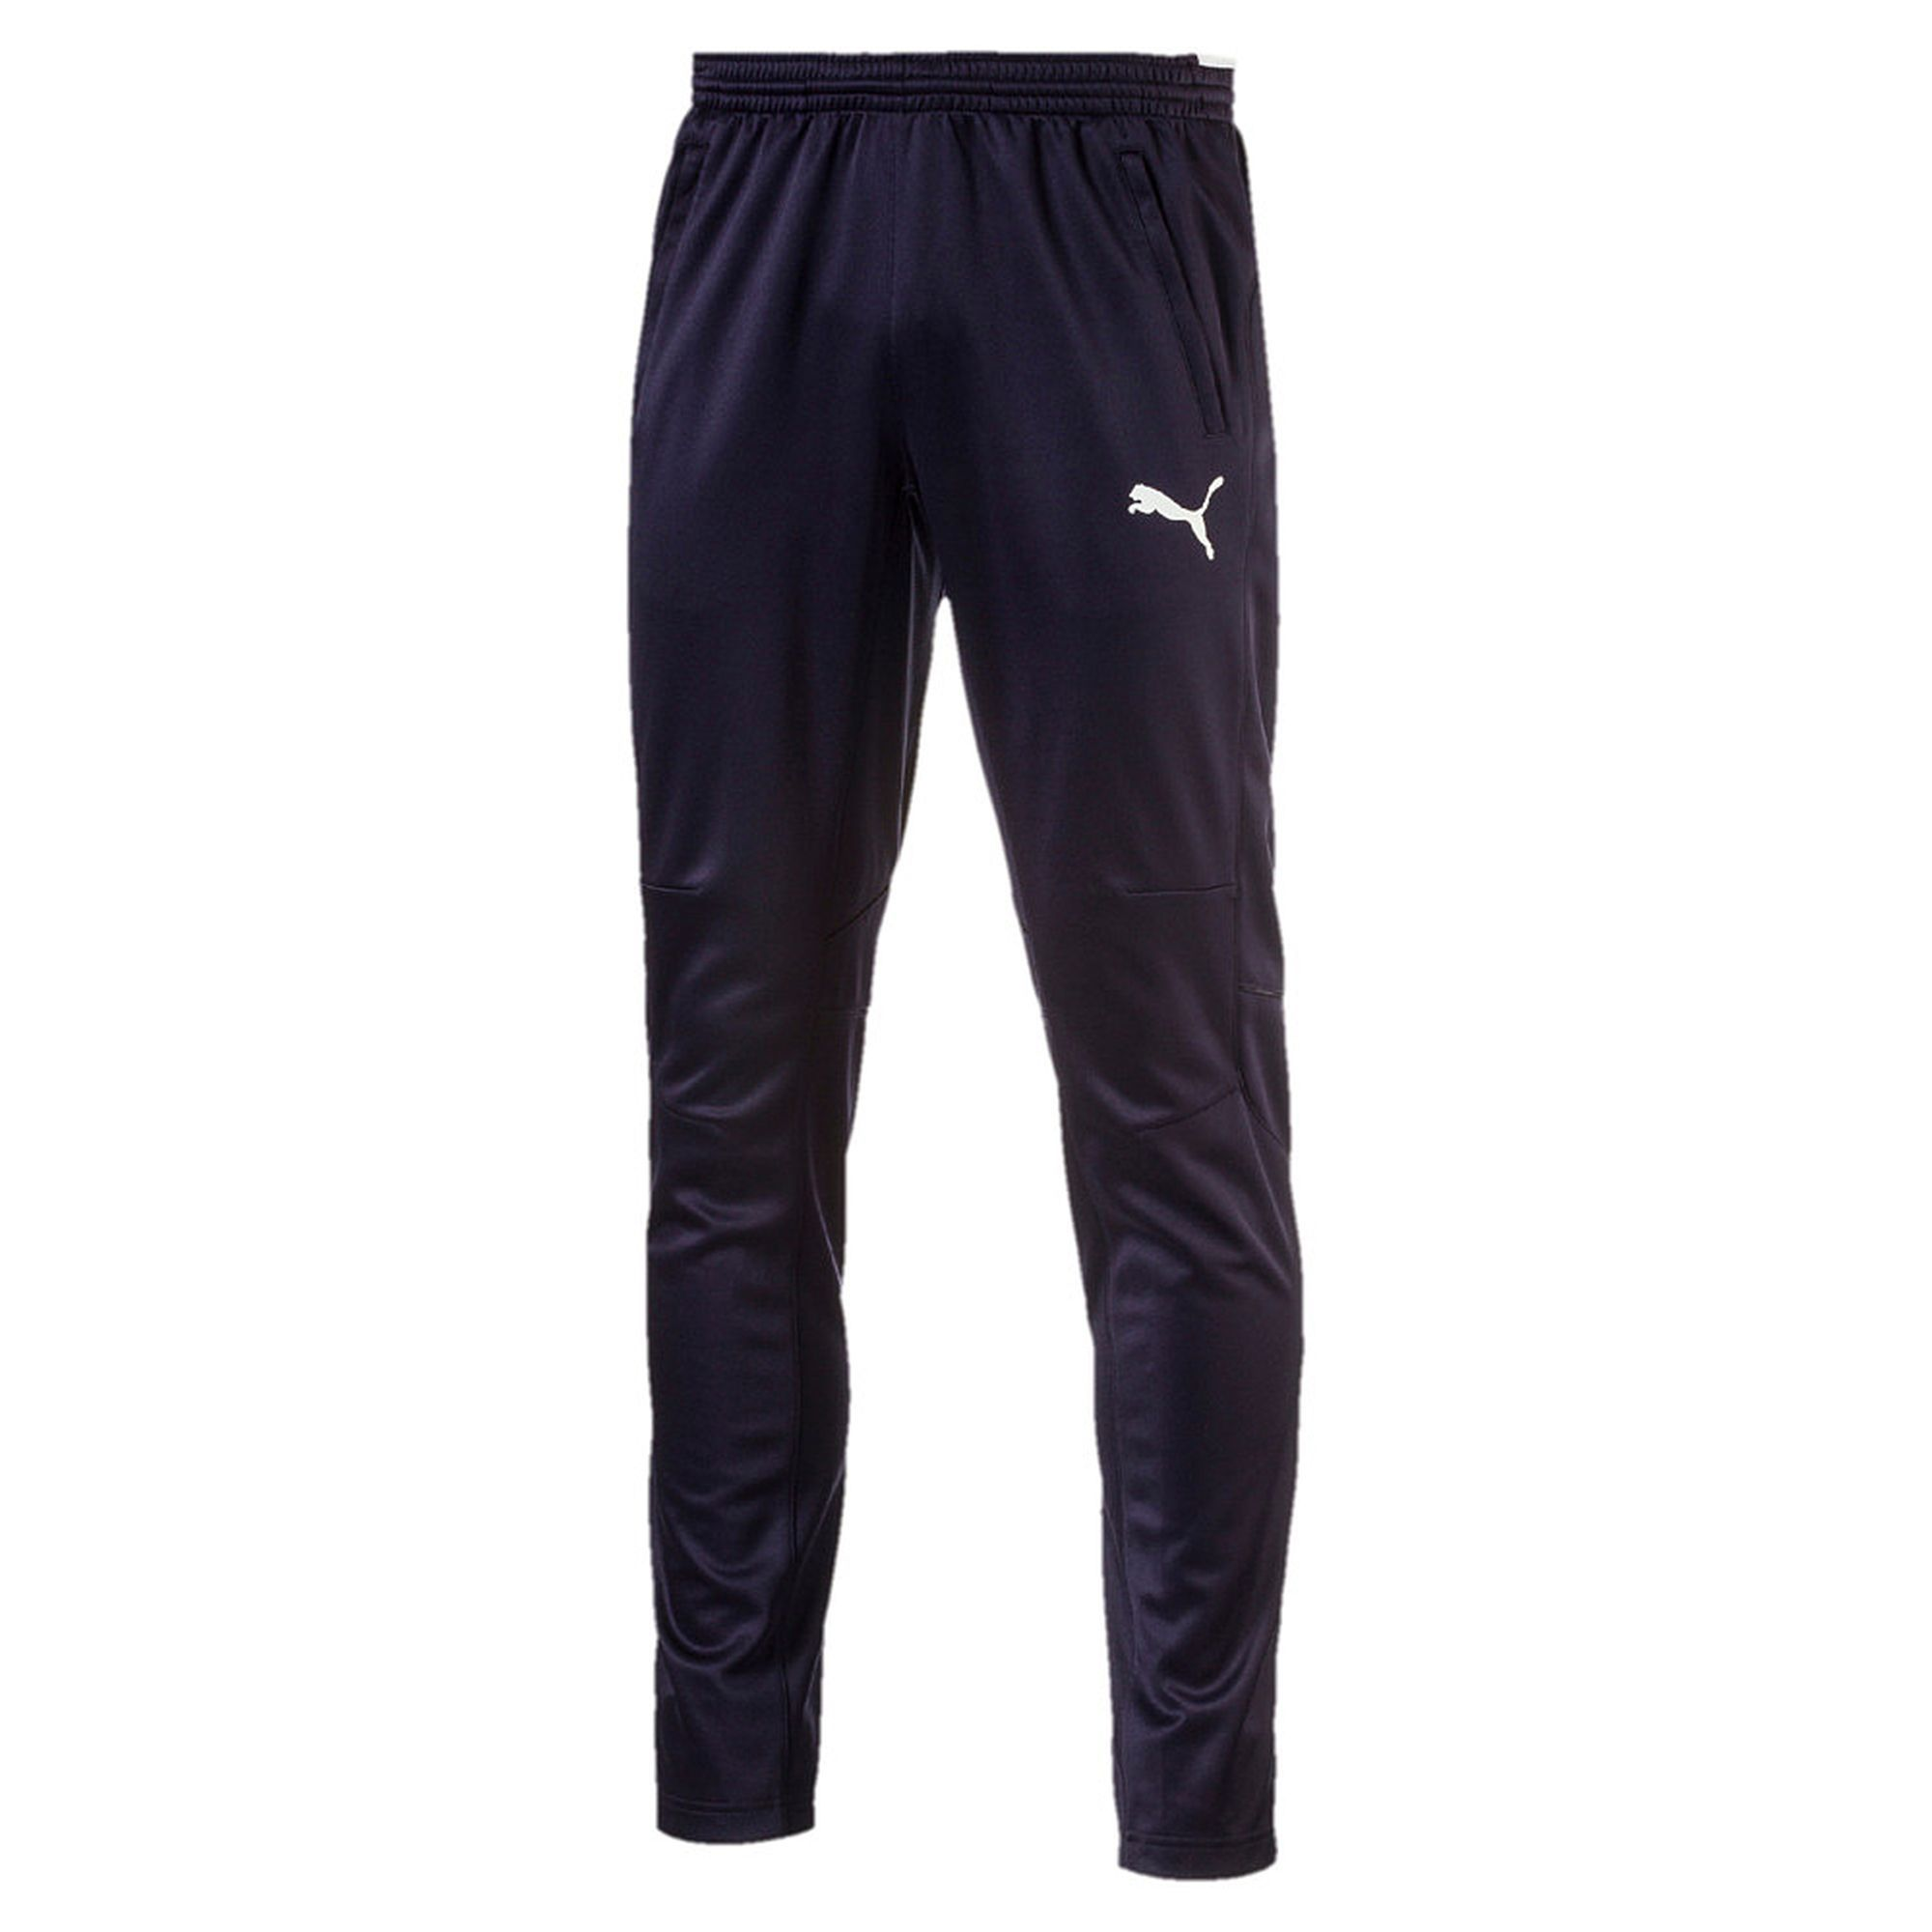 Puma Kinder Trainingshose Training Pant